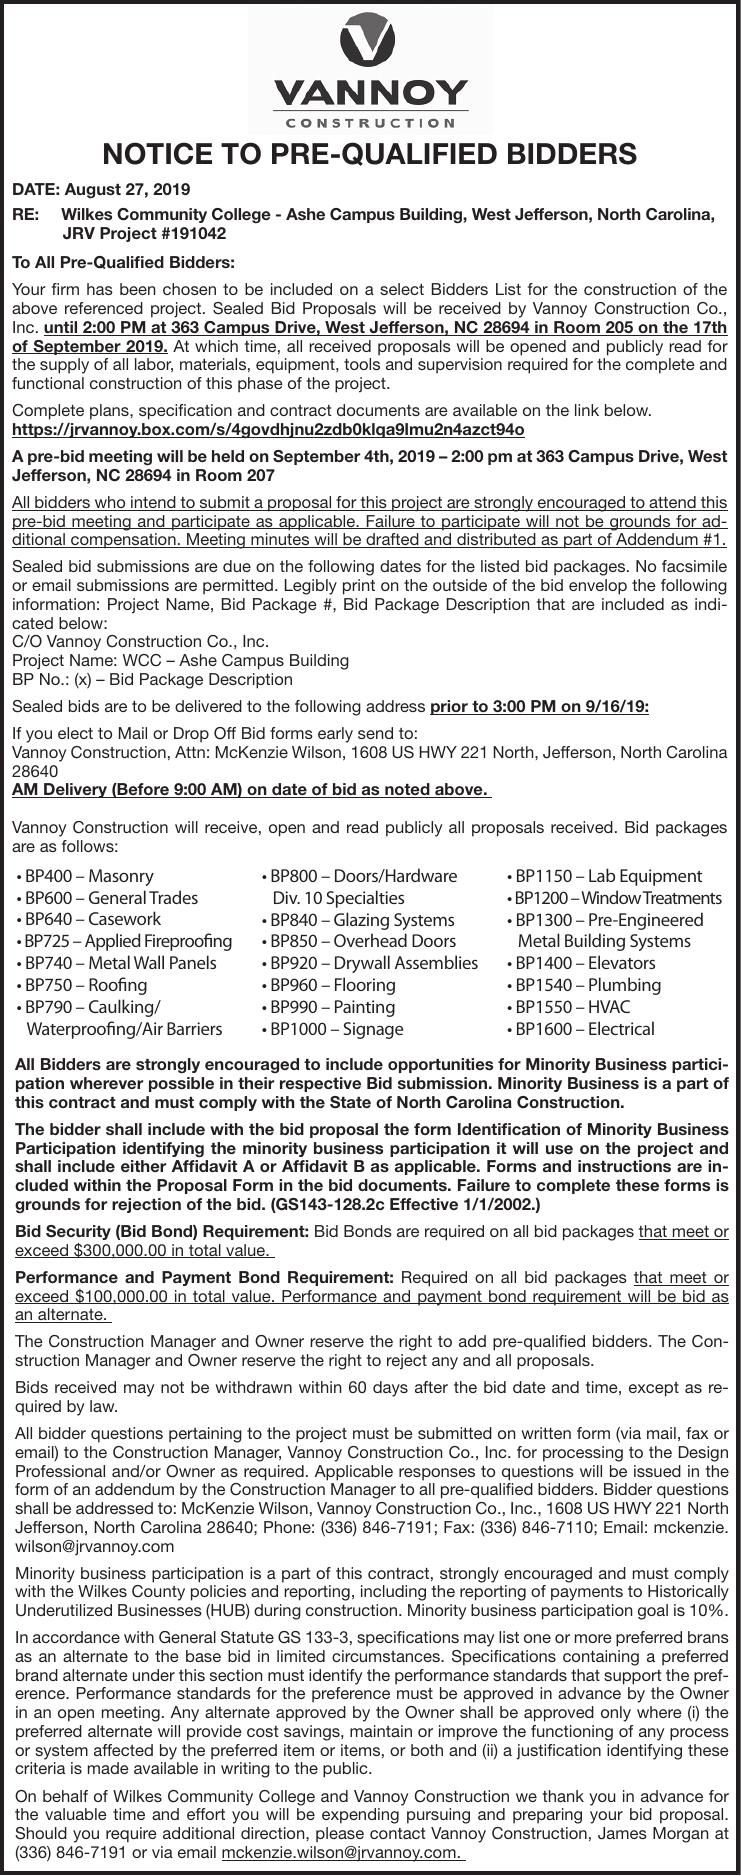 NOTICE TO PRE-QUALIFIED BIDDERS